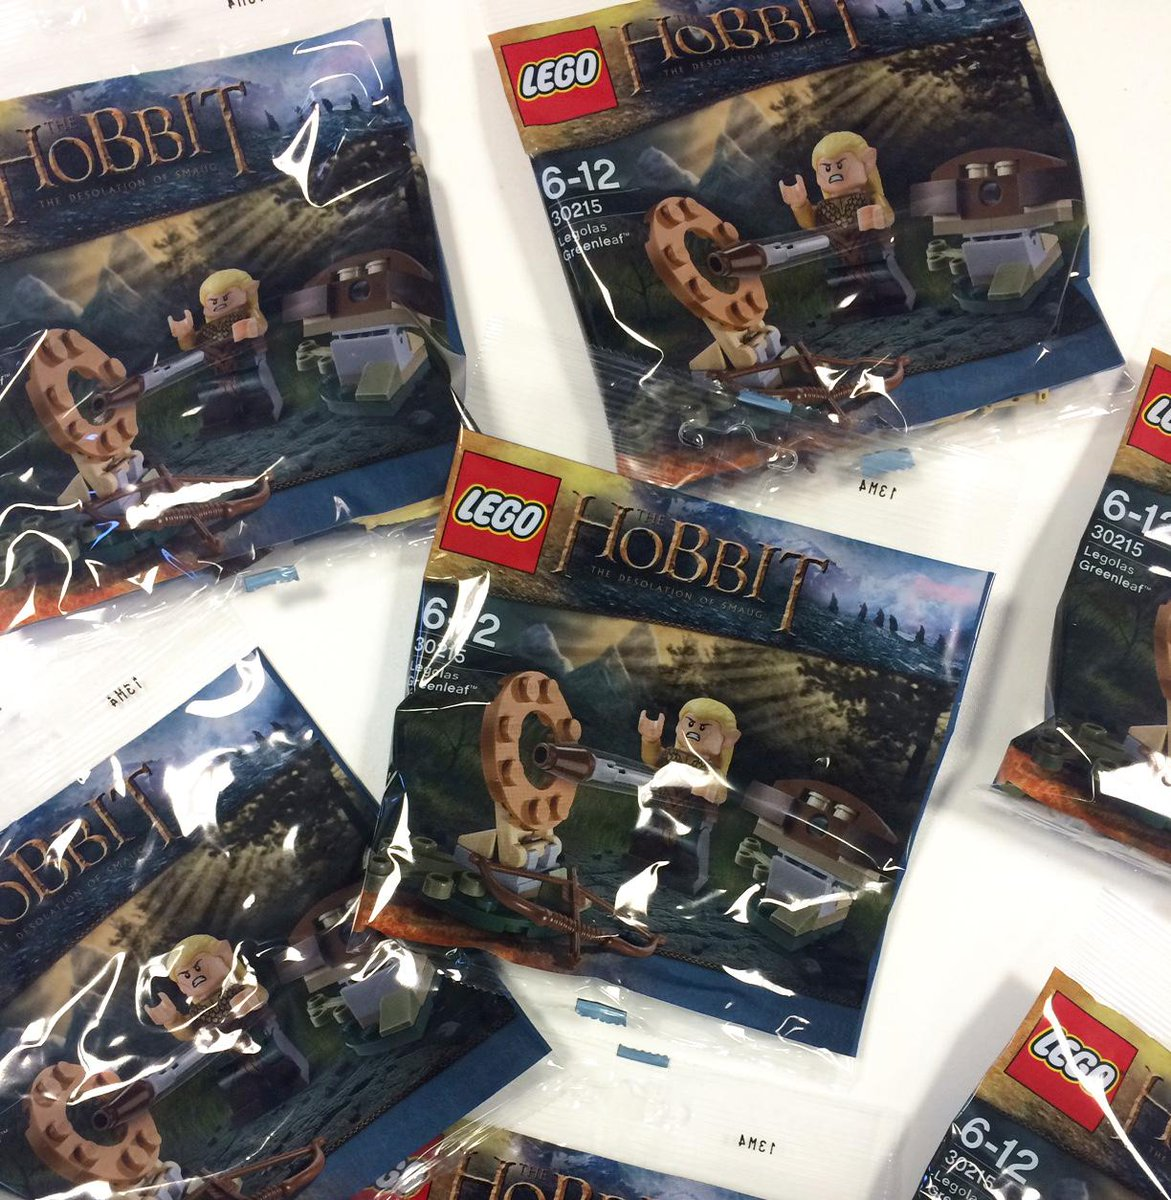 #WIN // We have 10 Legolas #LEGO characters up for grabs, RT for a chance to win! http://t.co/egtoqIVNix Ends Monday http://t.co/4B68VbLaVP